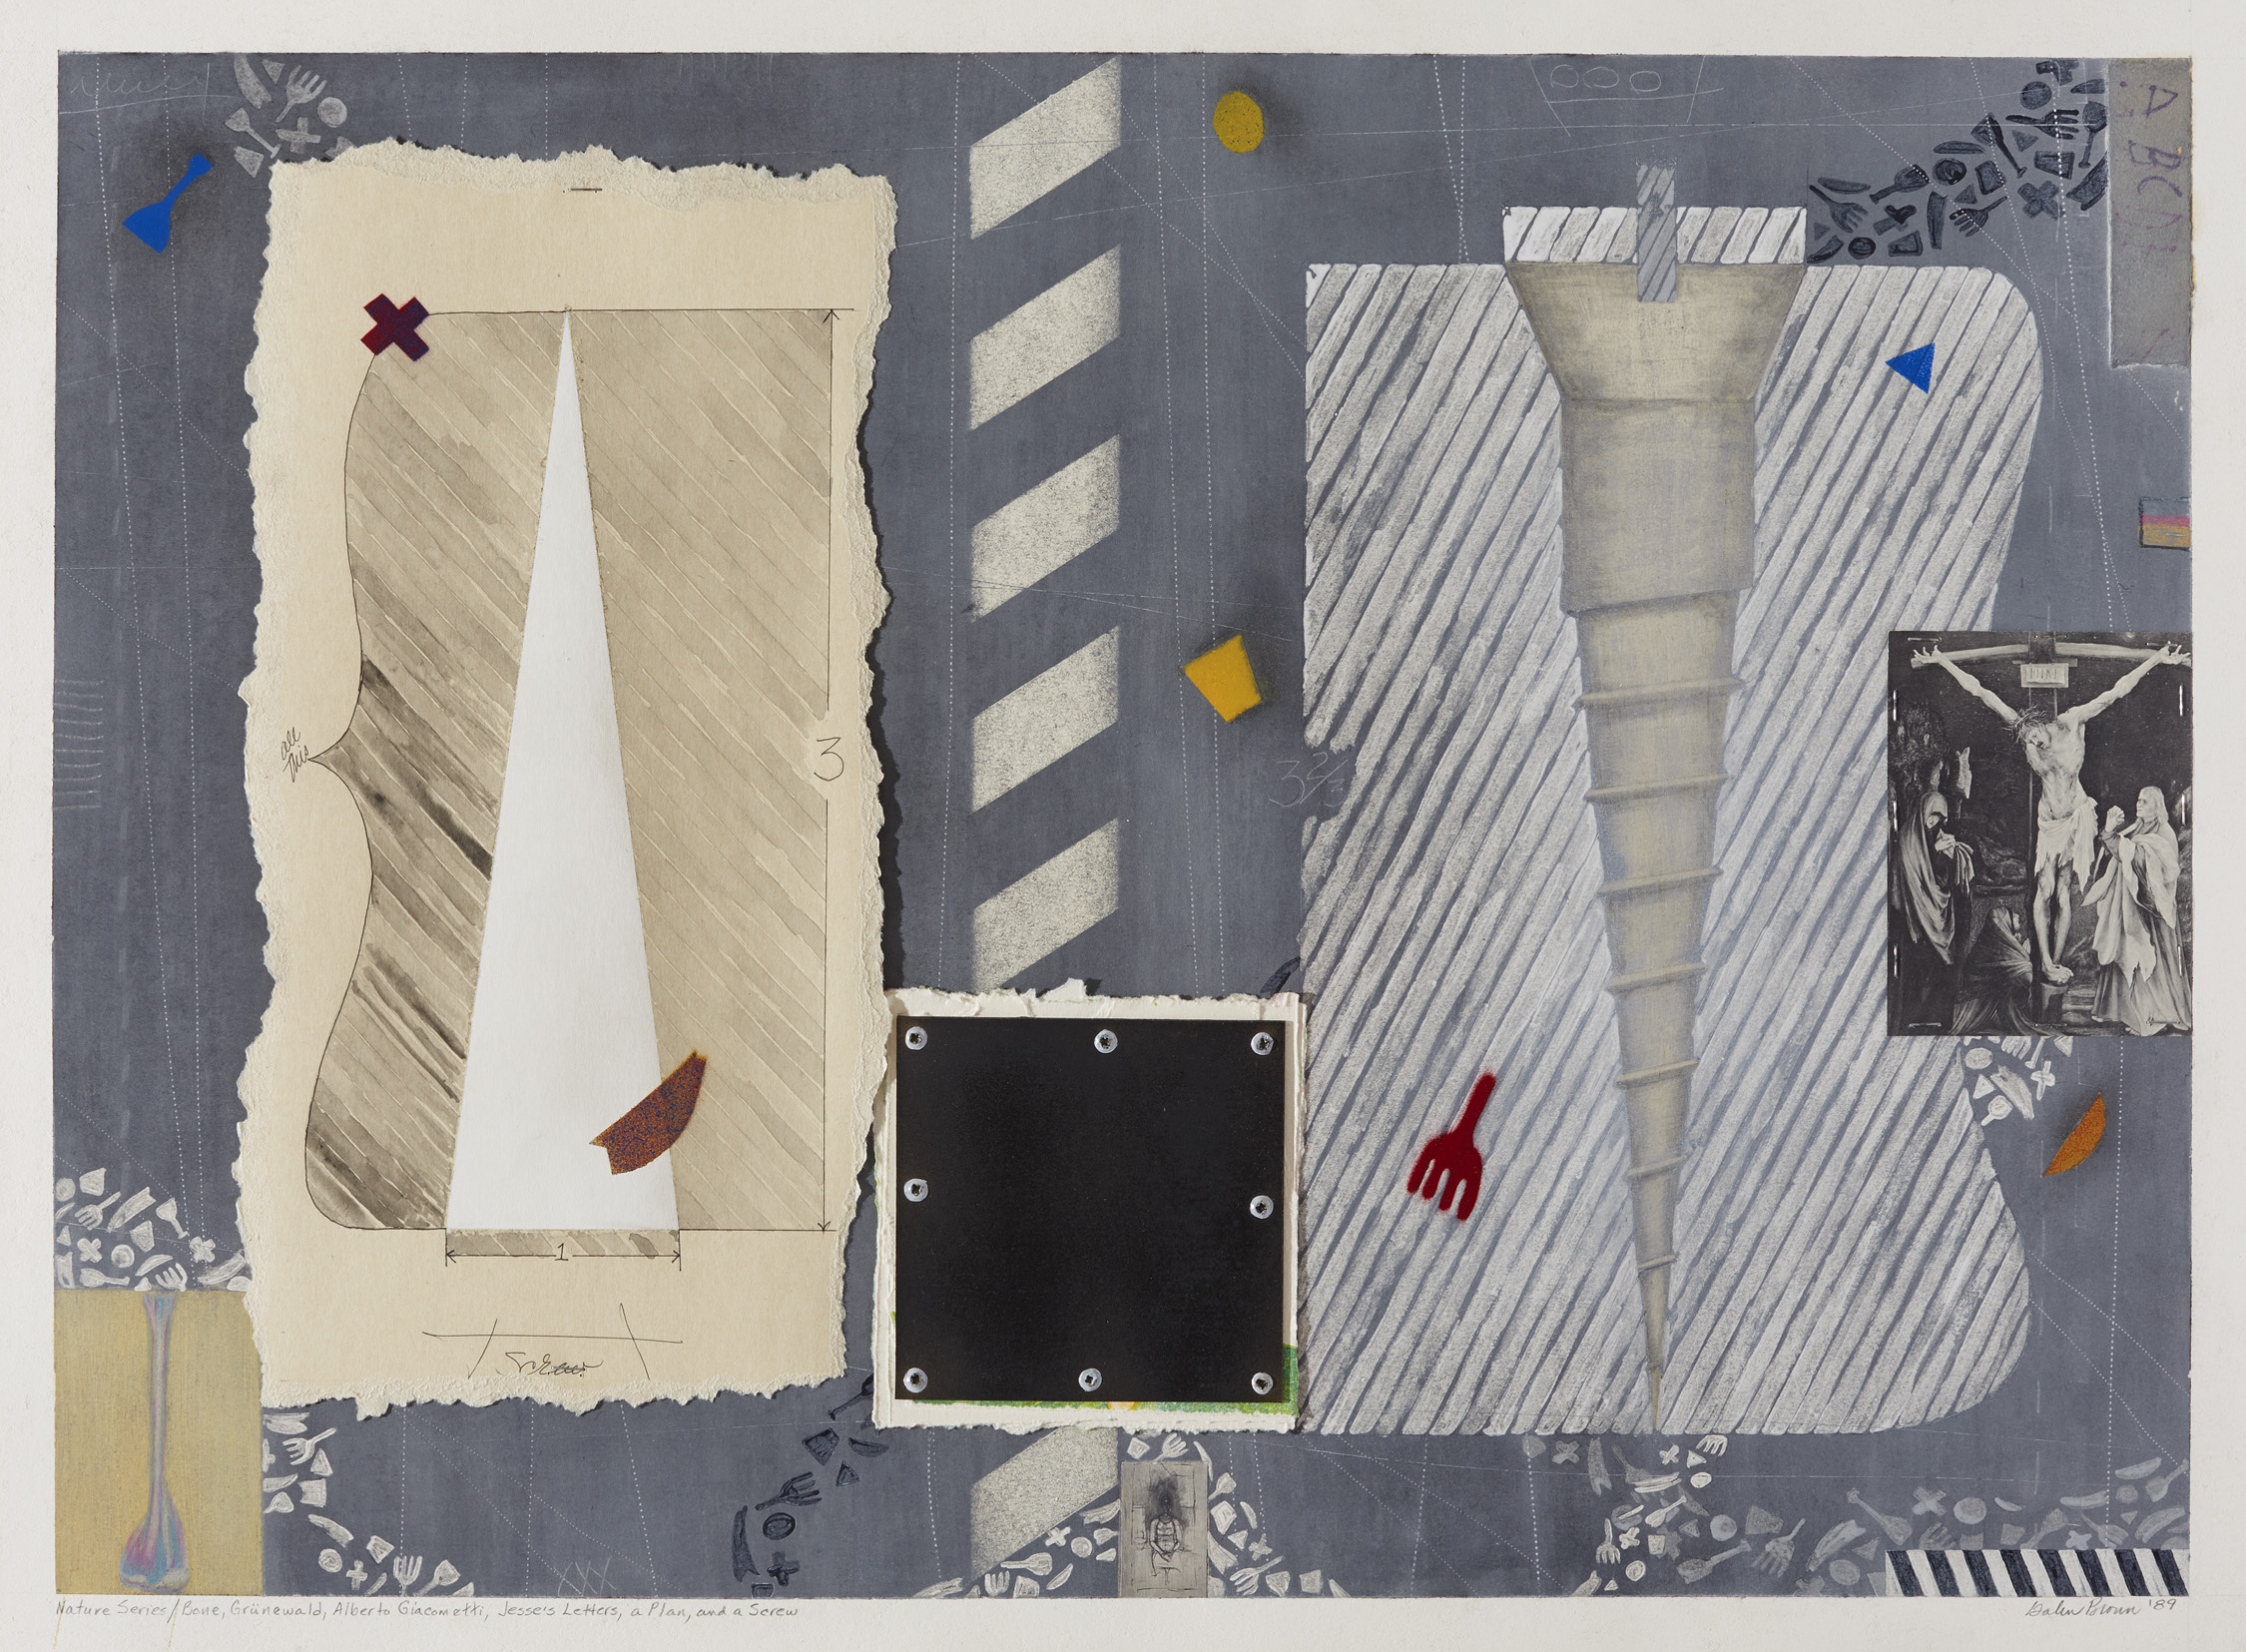 Nature Series/Bone, Grunewald, Alberto Giacometti, Jesse's Letters, a Plan and a Screw